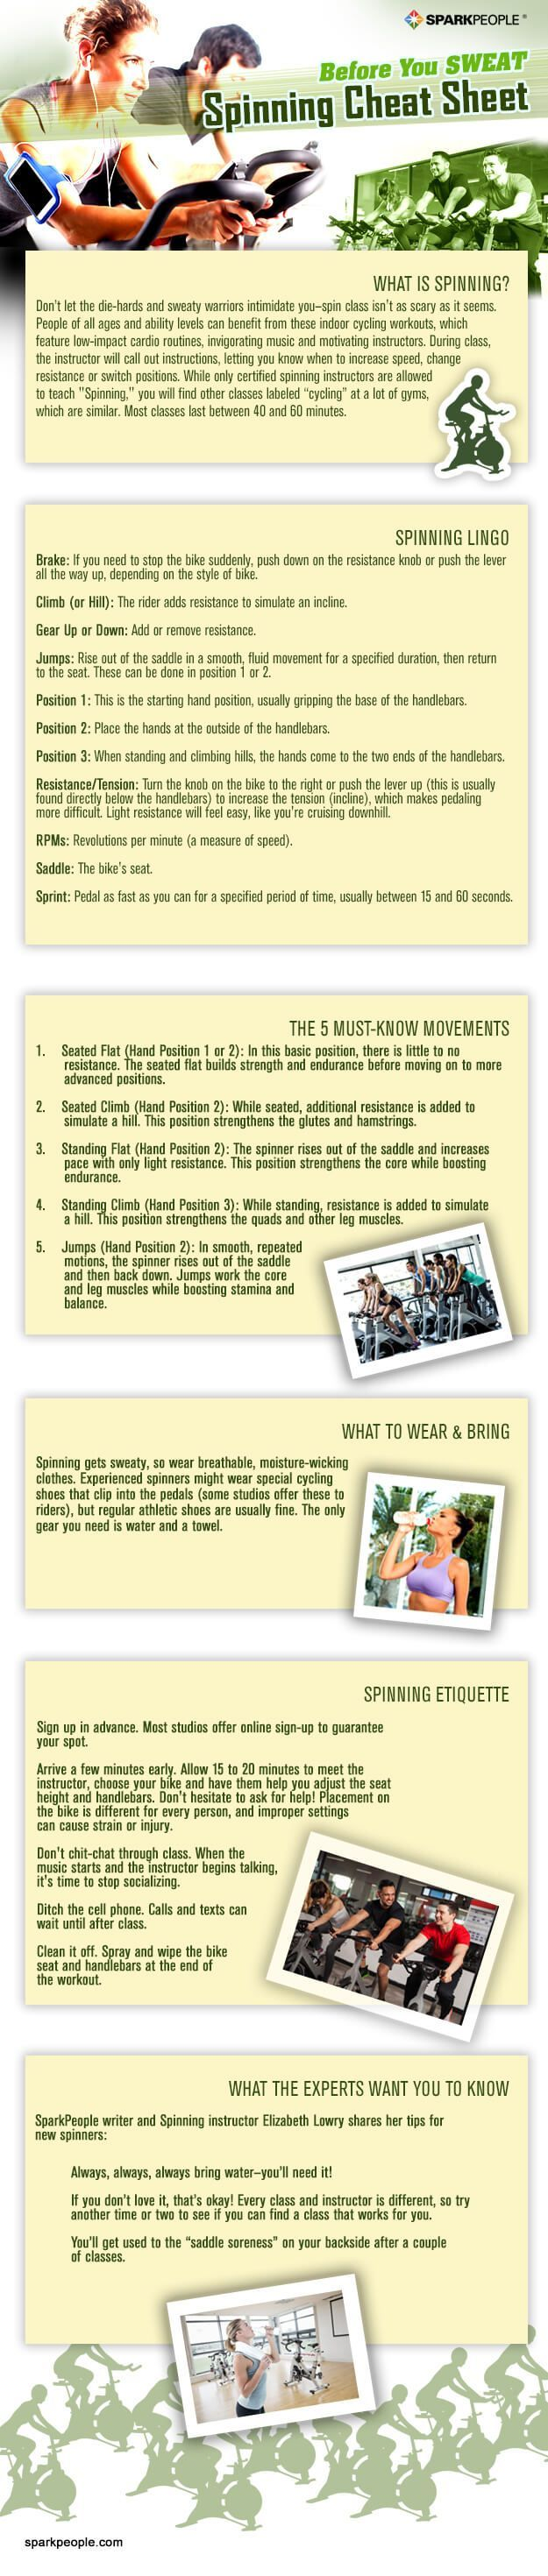 Thinking about trying an indoor cycling exercise class? Before you spin, review this handy guide to ensure a safe, effective workout.